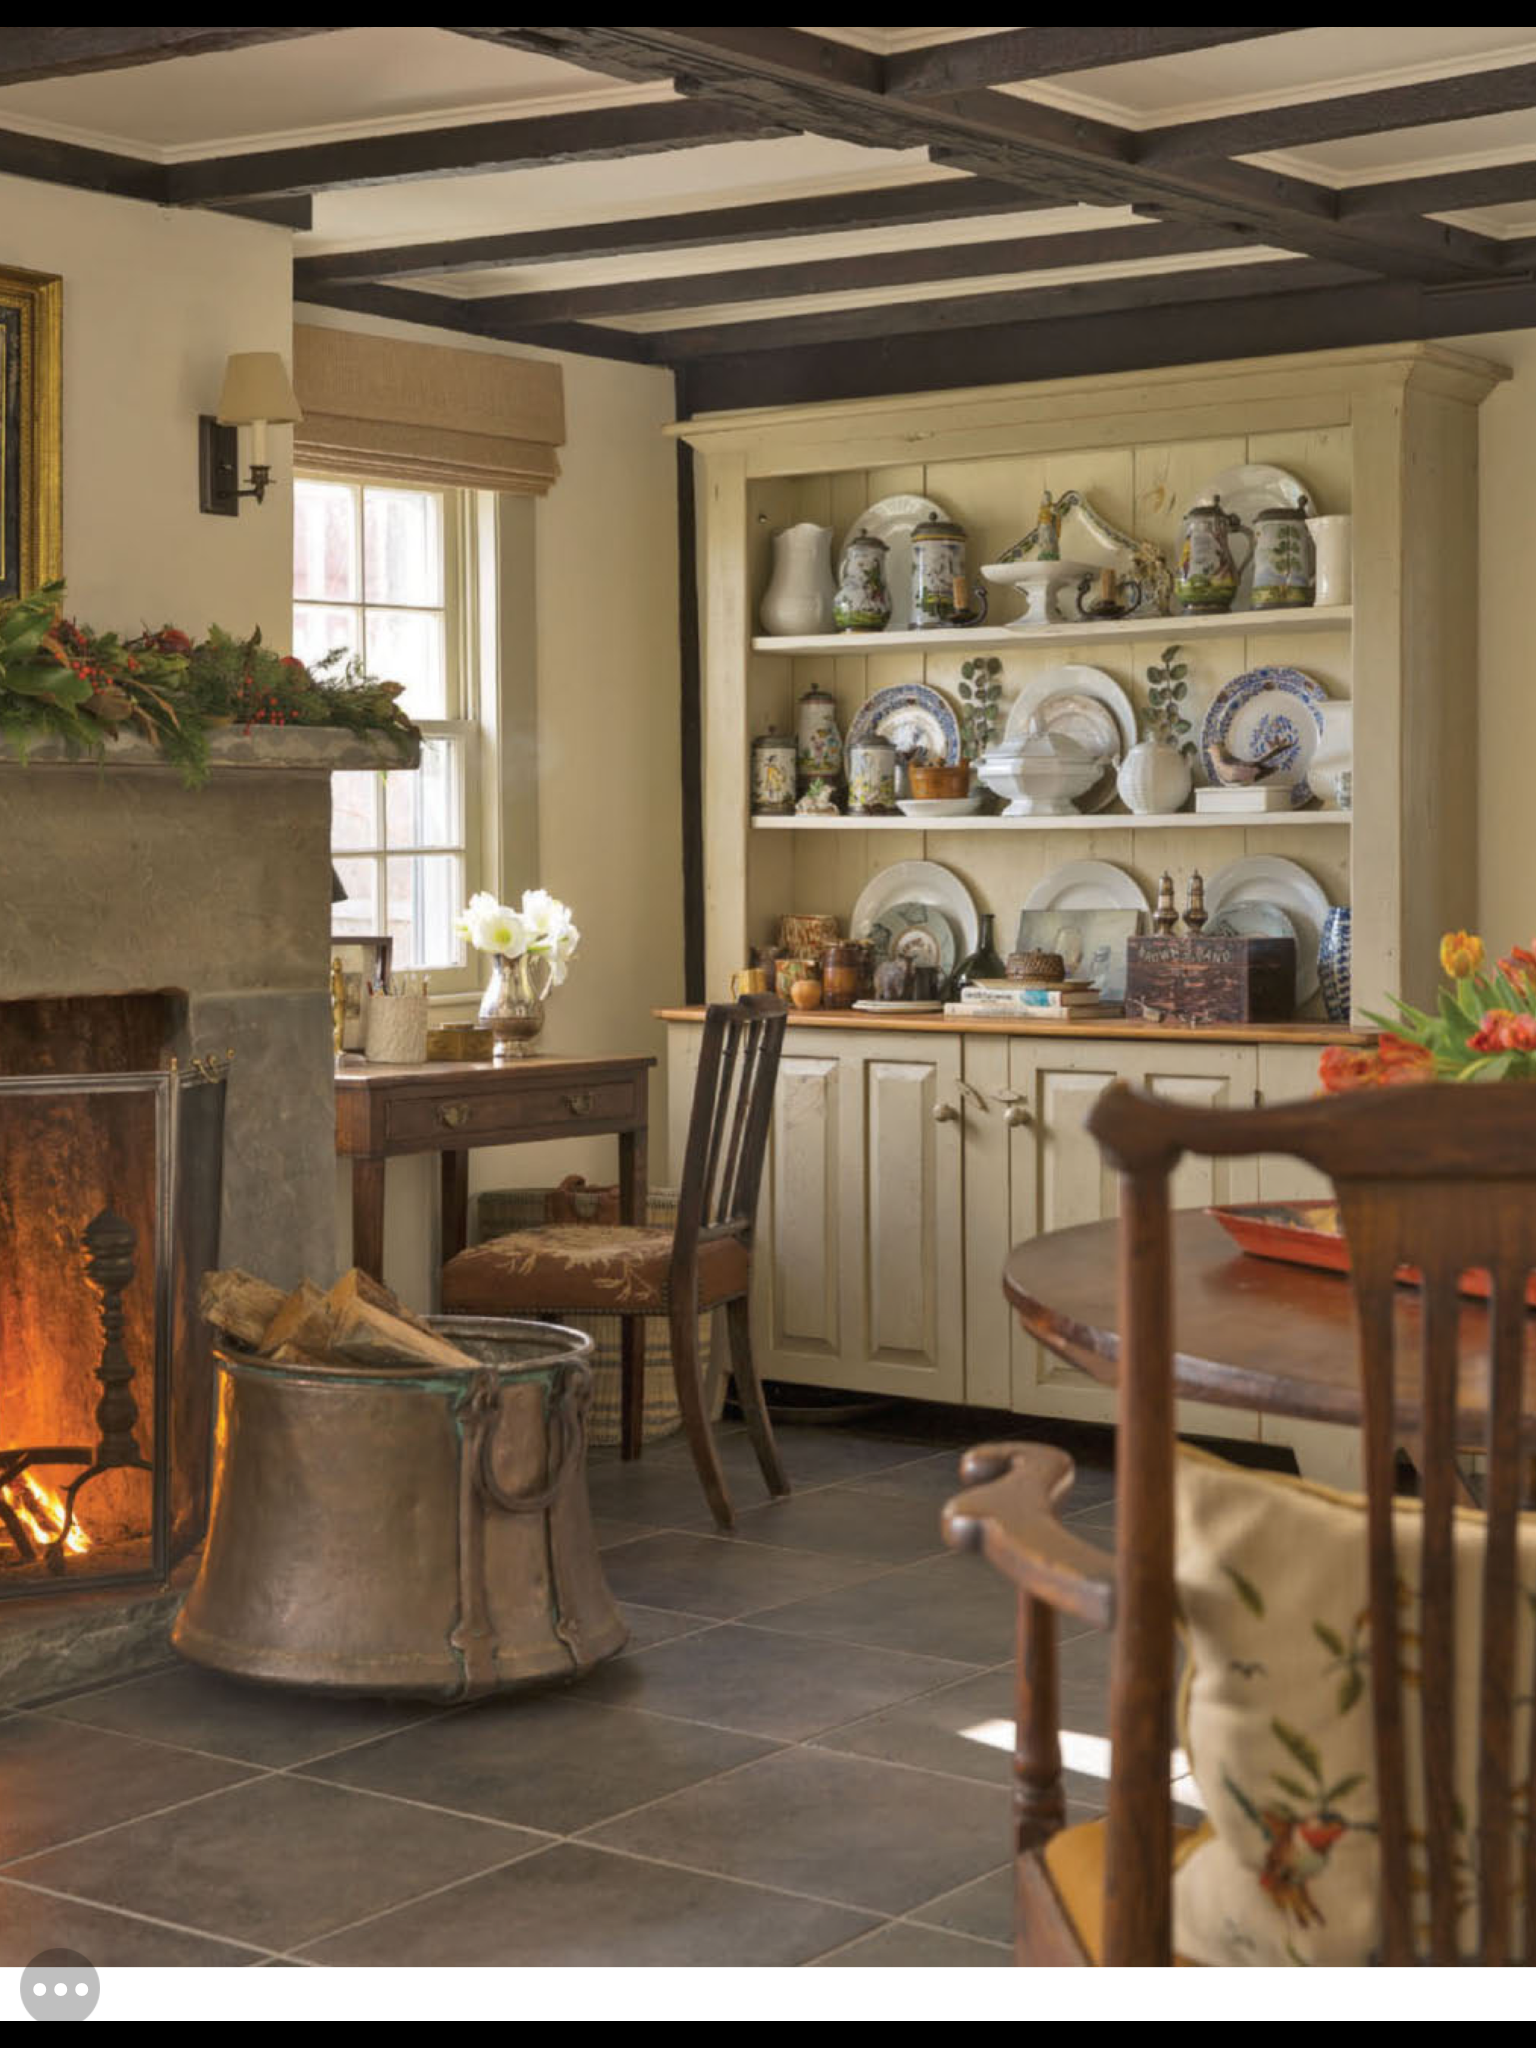 Style English Country In 2019: Pin By HHJ On Indoor